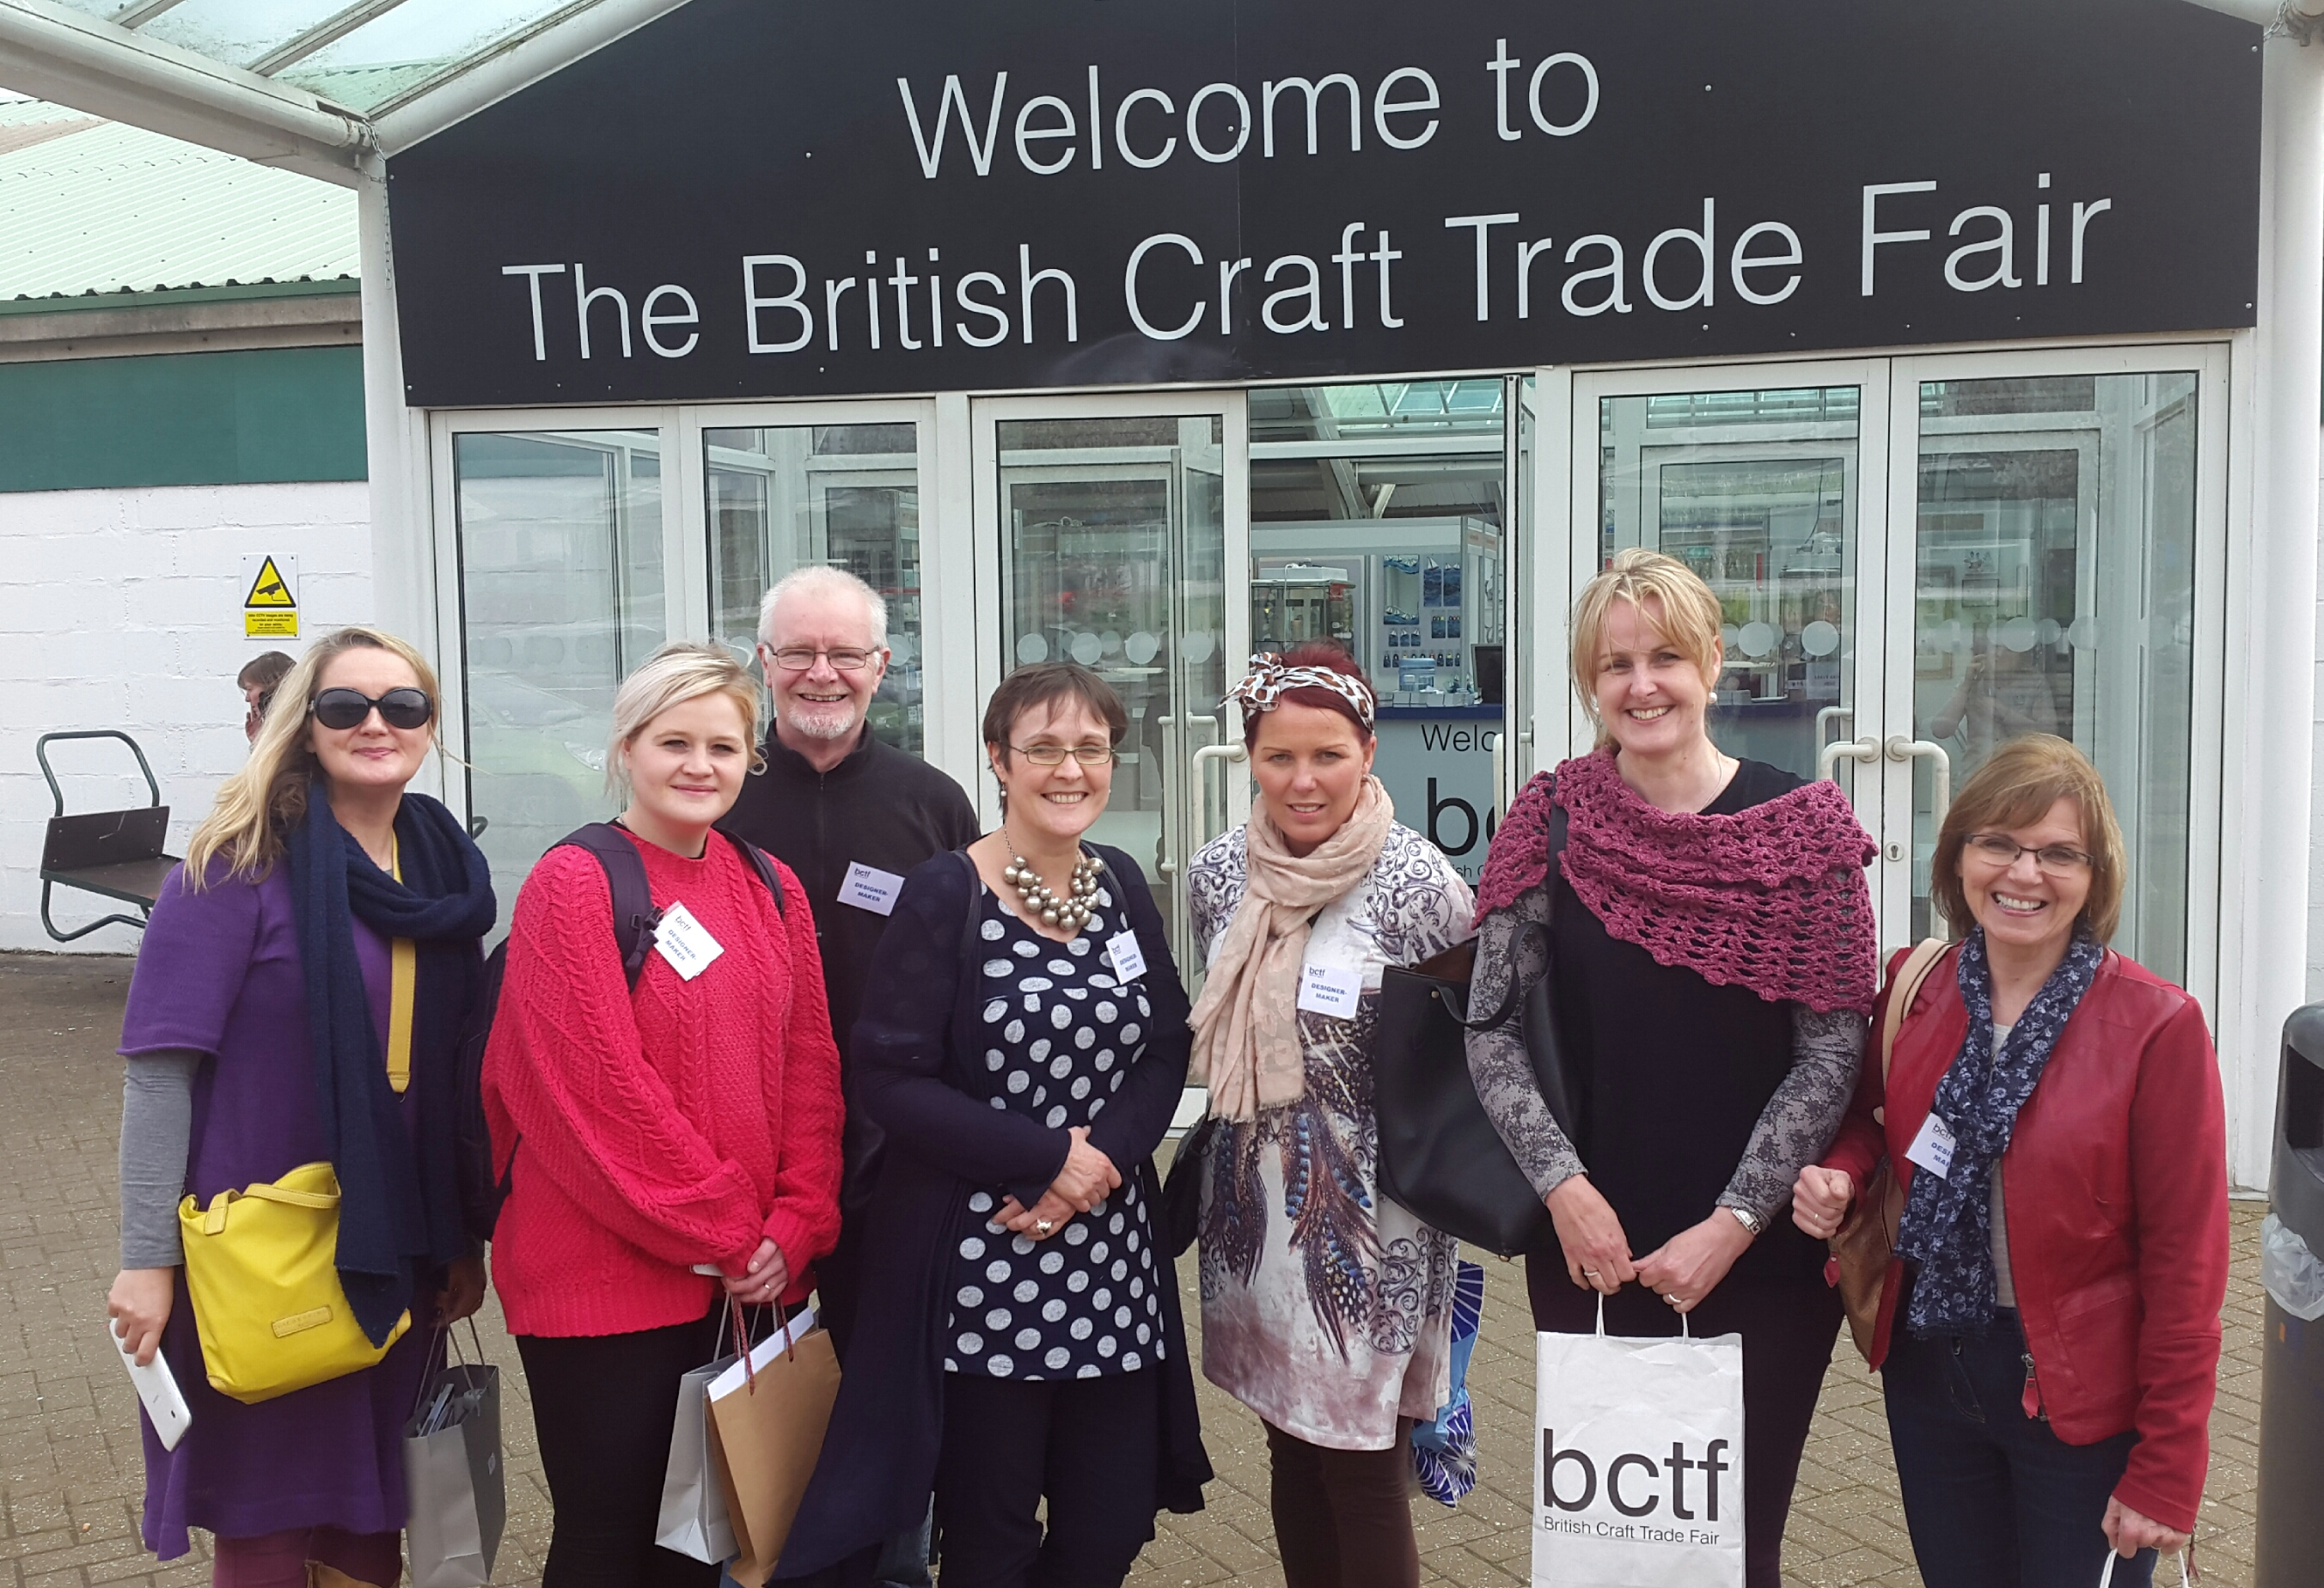 Pictured at the British Craft Trade Fair (April 2015) in Harrogate are (L to R); Edel McBride & Emma McCartney (Edel McBride Knitwear), Adrian Brothers  (Kildoag Pottery), Anne-Marie O'Hara, Aine Clark (Hansel & Gretel), Bernie Murphy, and Ursula McGivern (Kildoag Pottery).